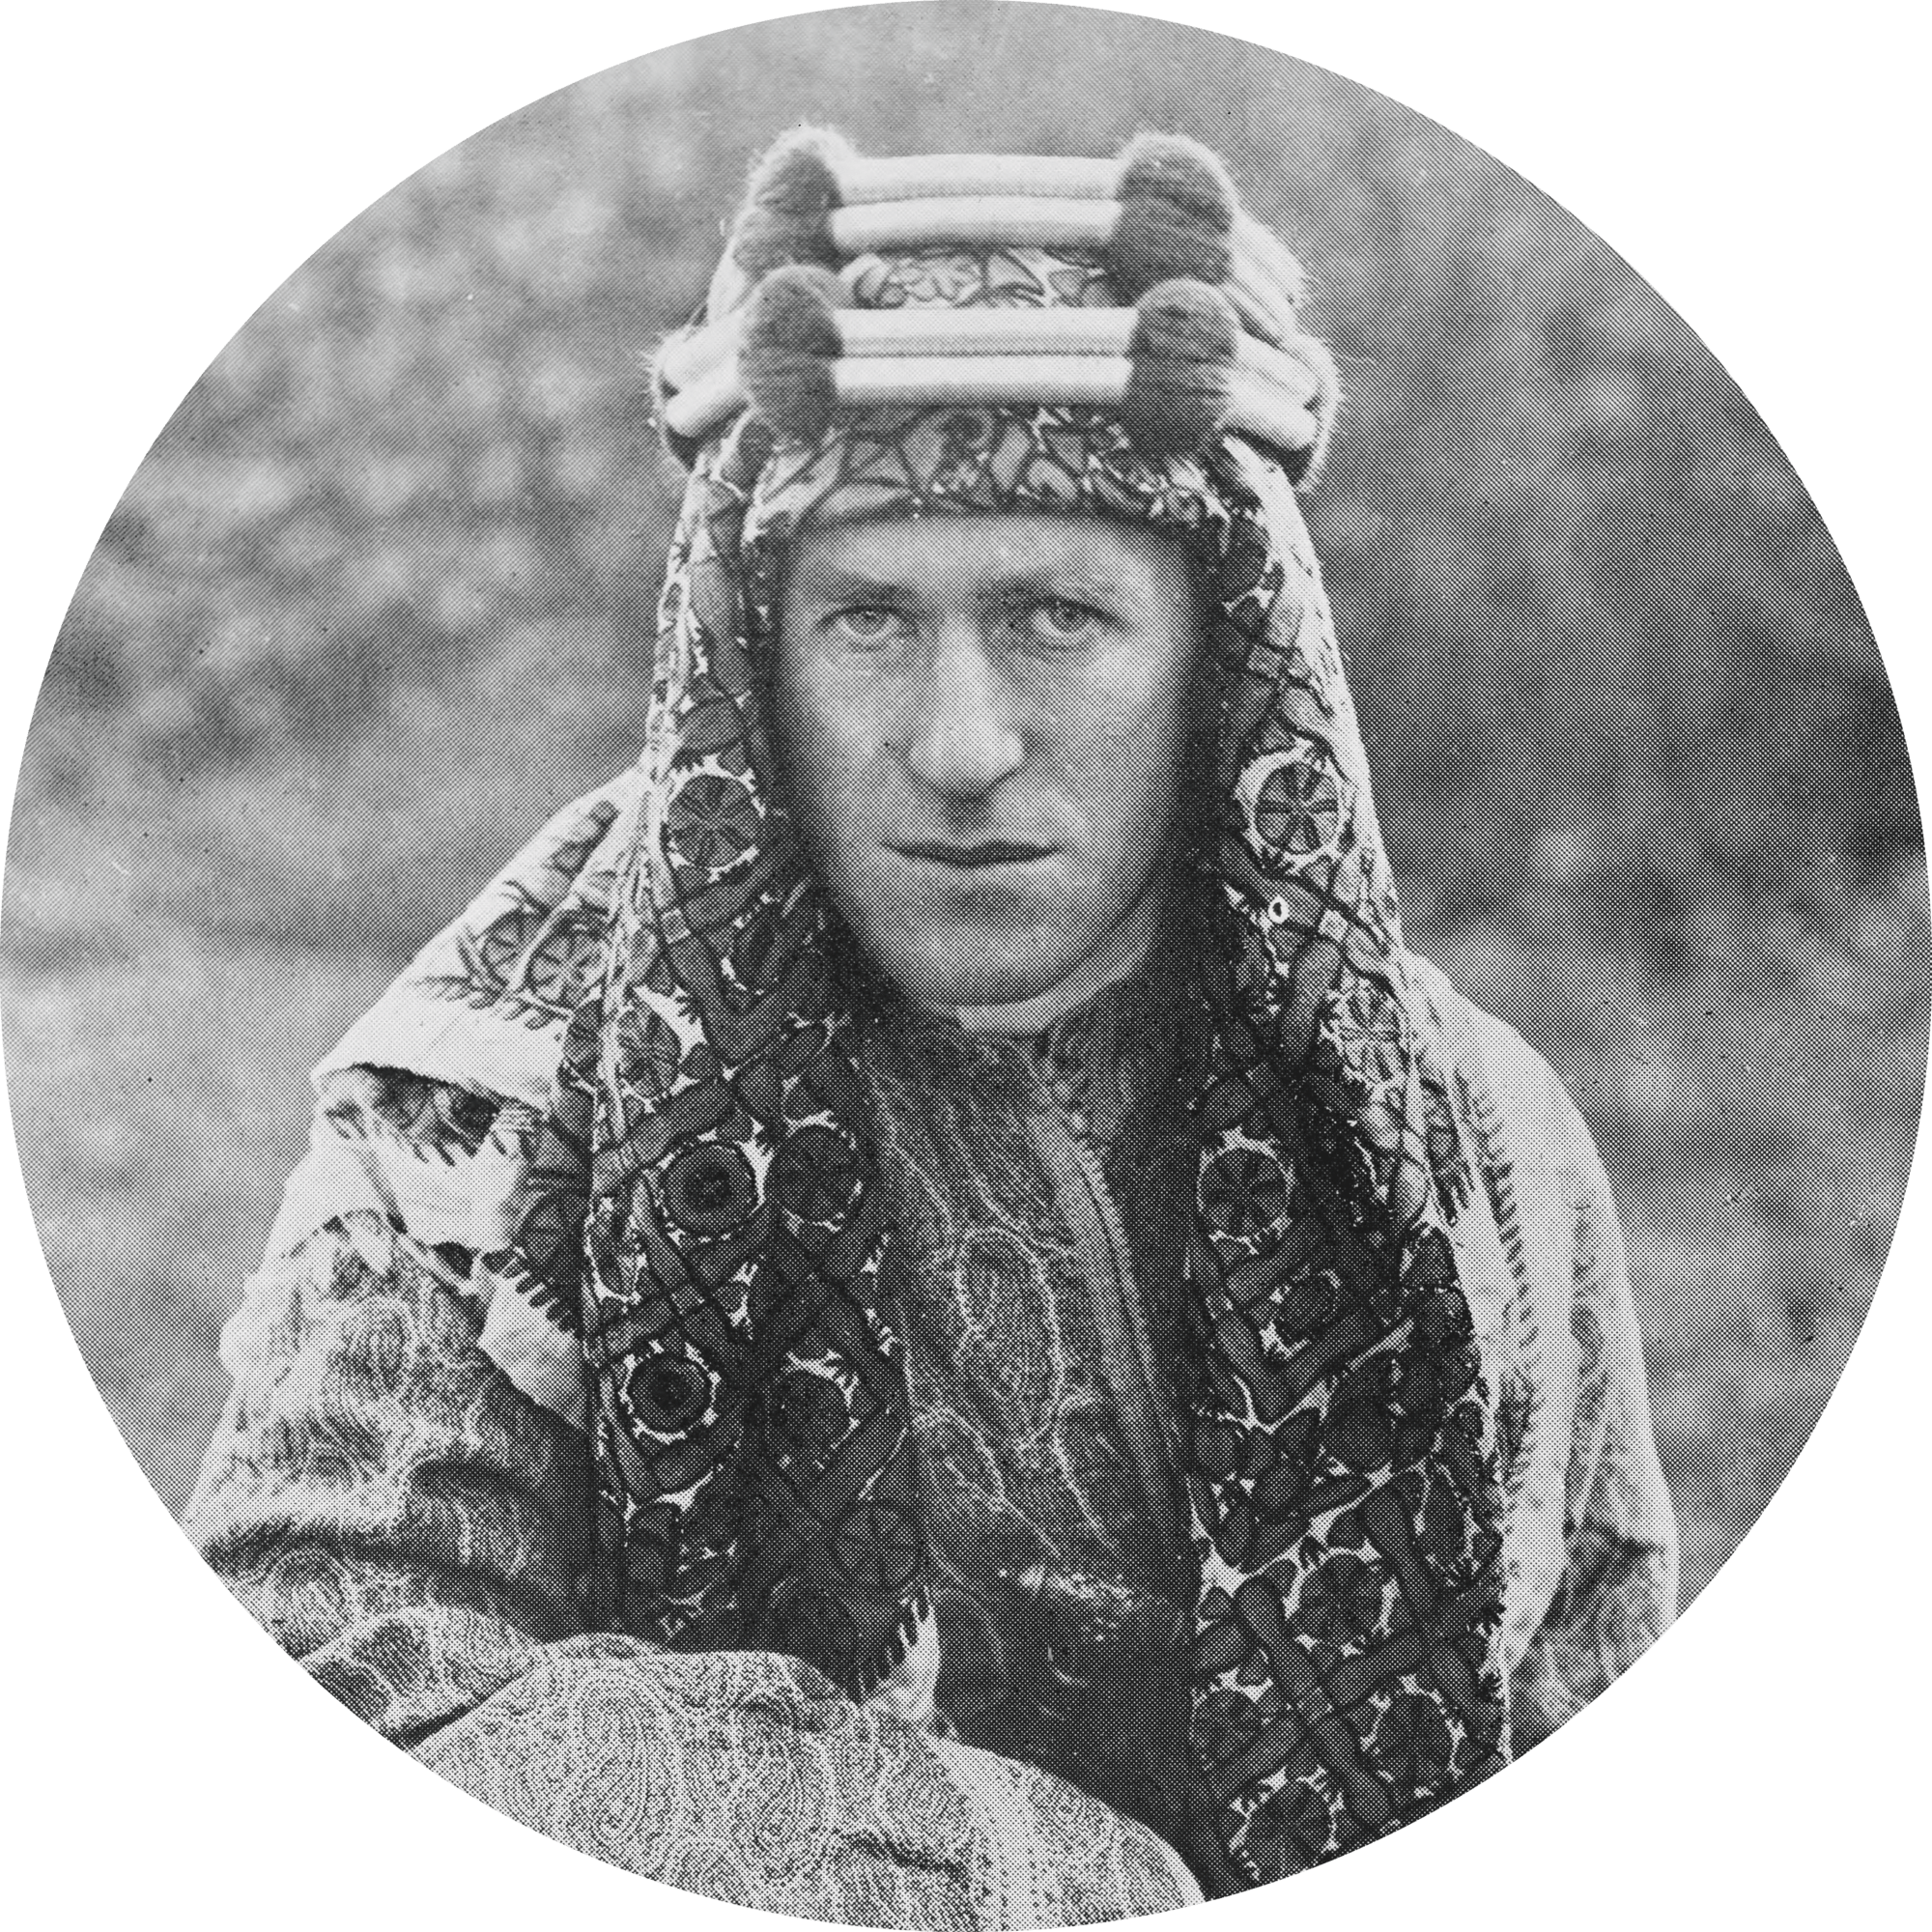 T.E. Lawrence dit Lawrence d'Arabie